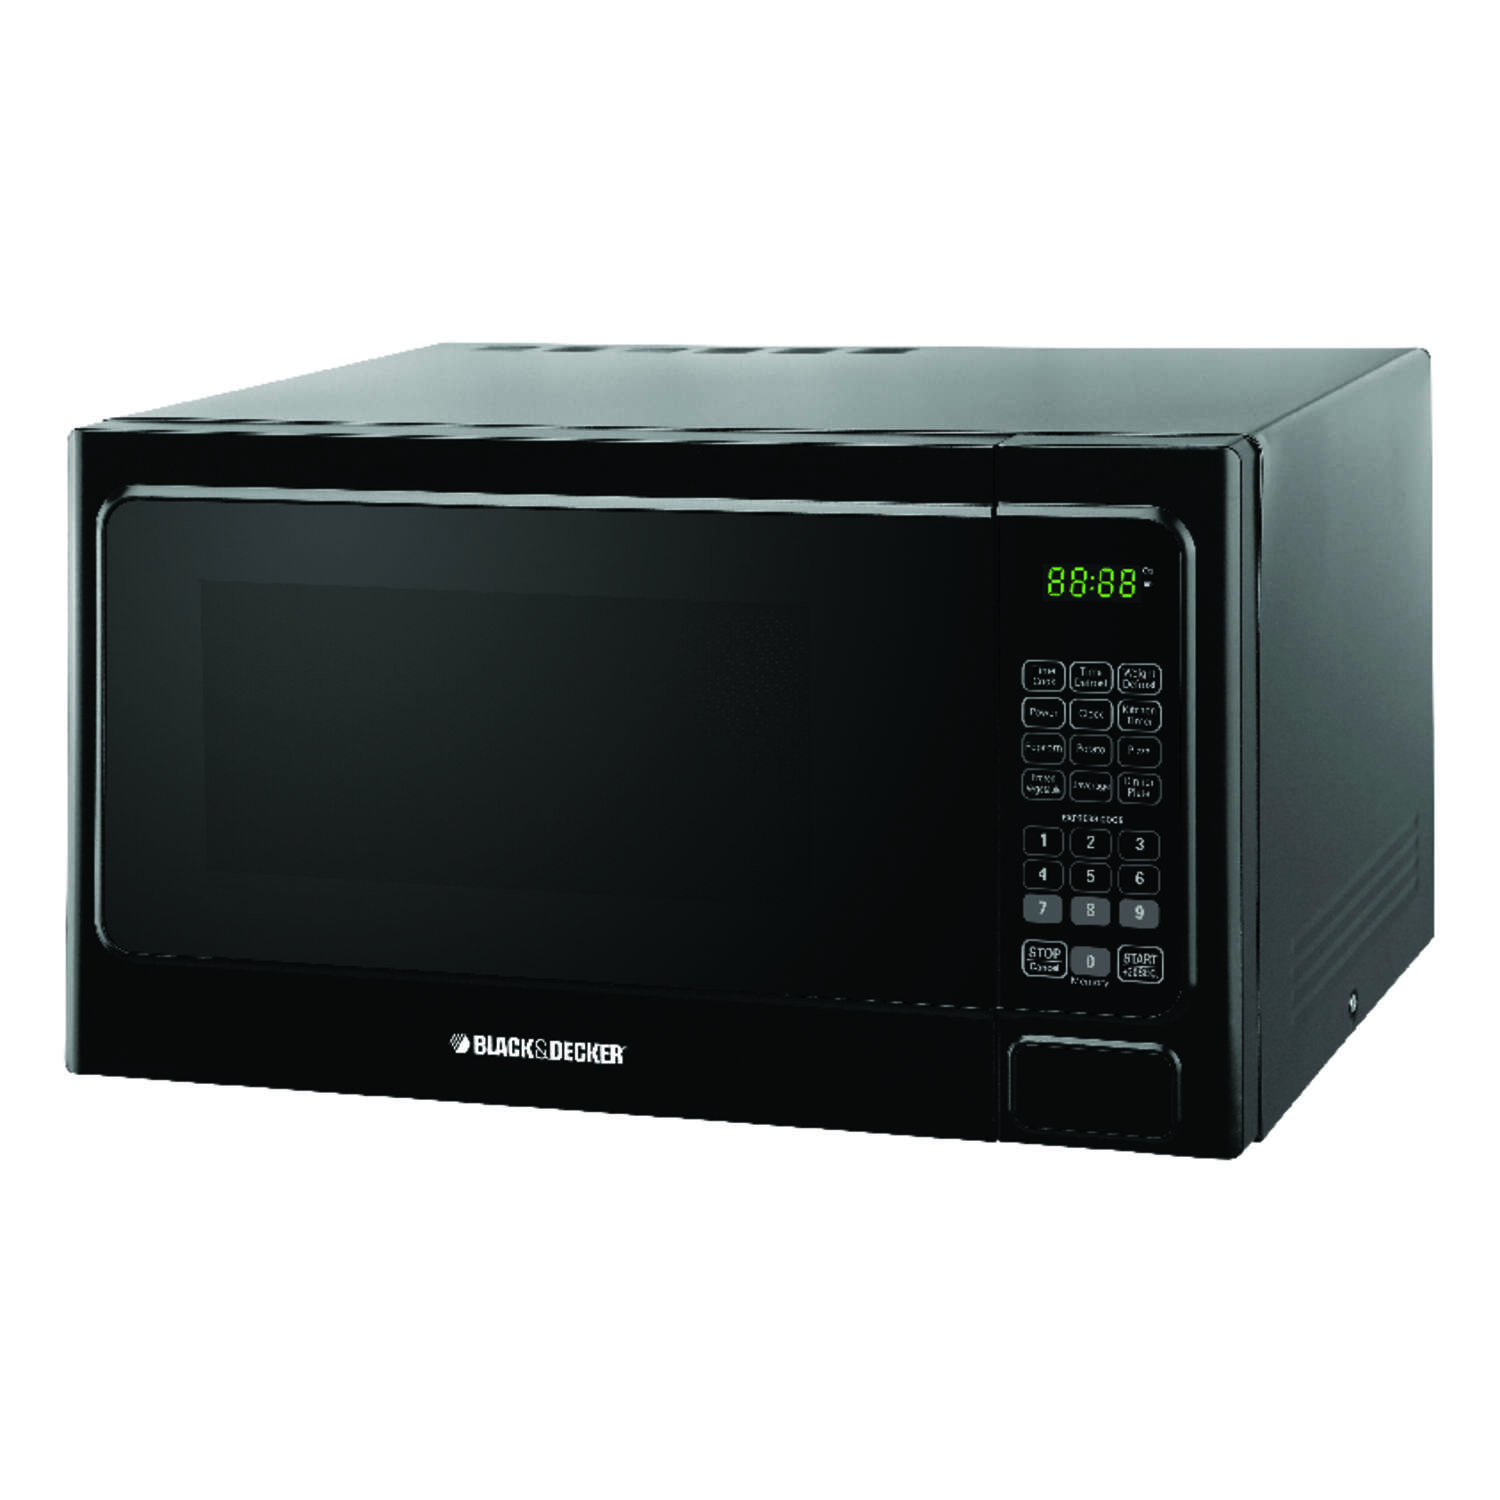 Black & Decker Microwave 1.1 cu. ft. 1,000 watts Black